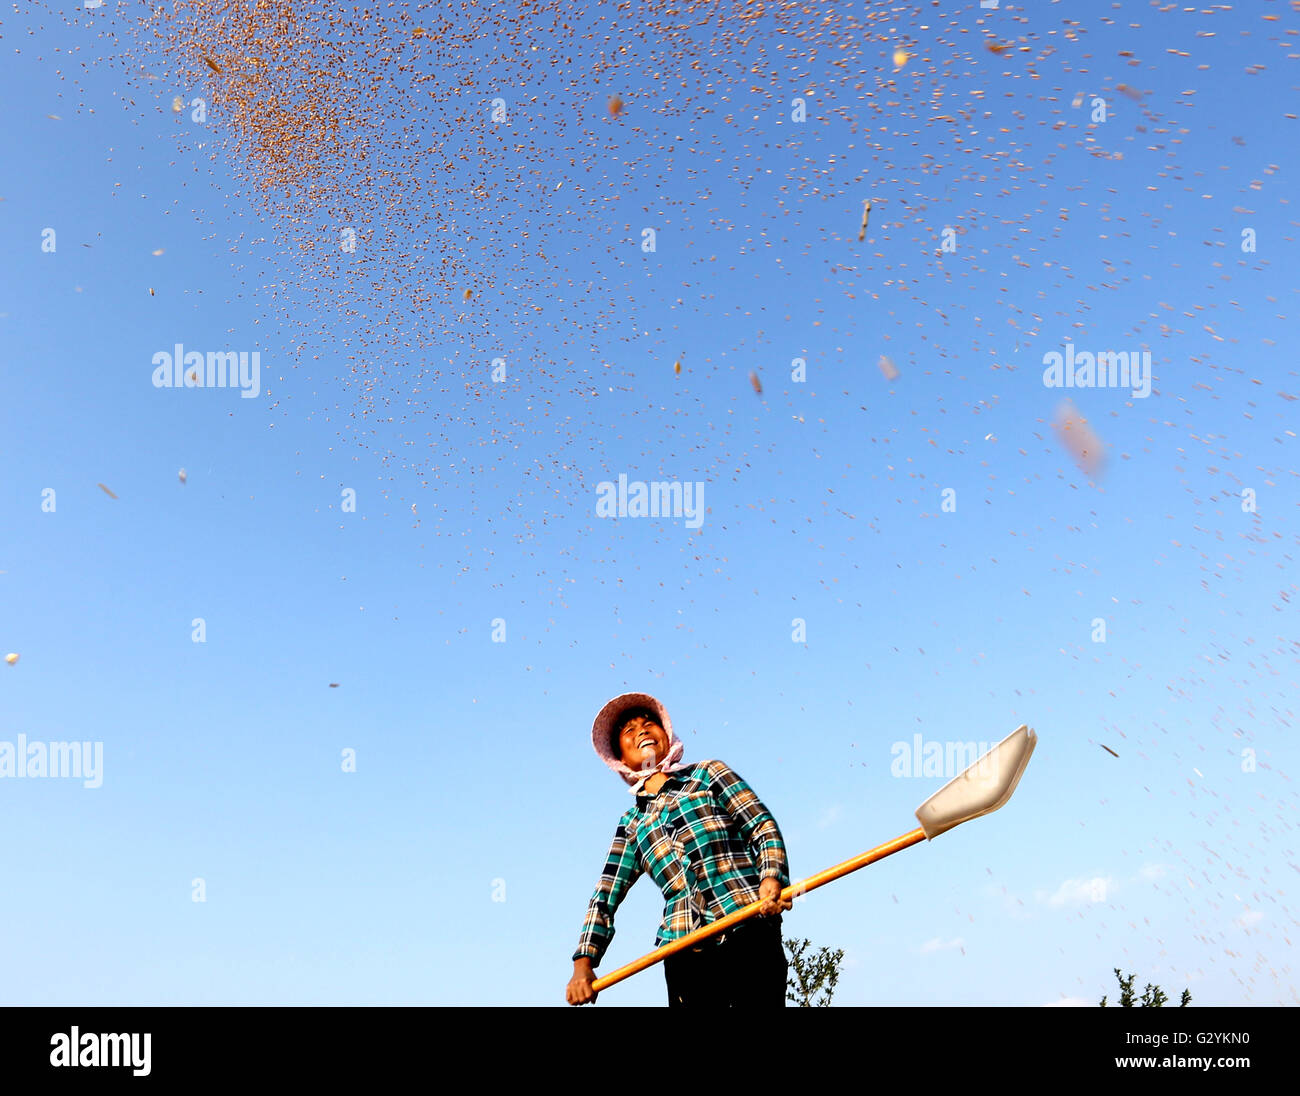 Linyi, China's Shandong Province. 4th June, 2016. Farmer Chen Enfang airs the newly-harvested wheat in Lingpo - Stock Image